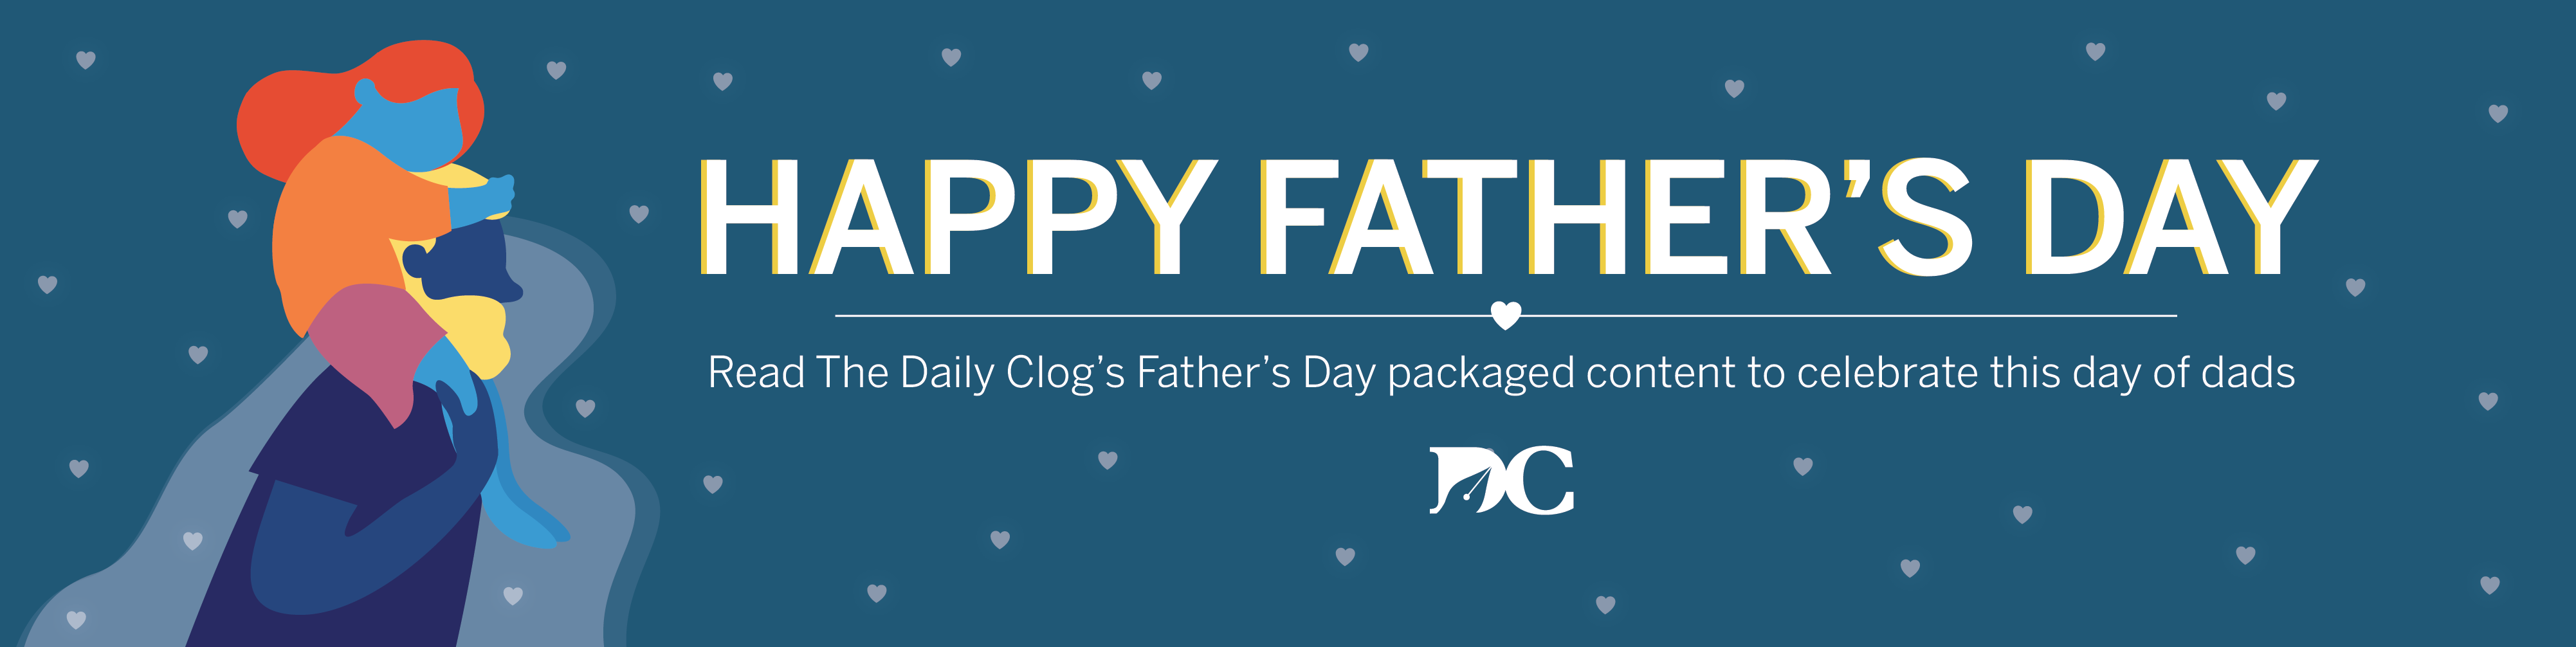 Read our Father's Day packaged content!